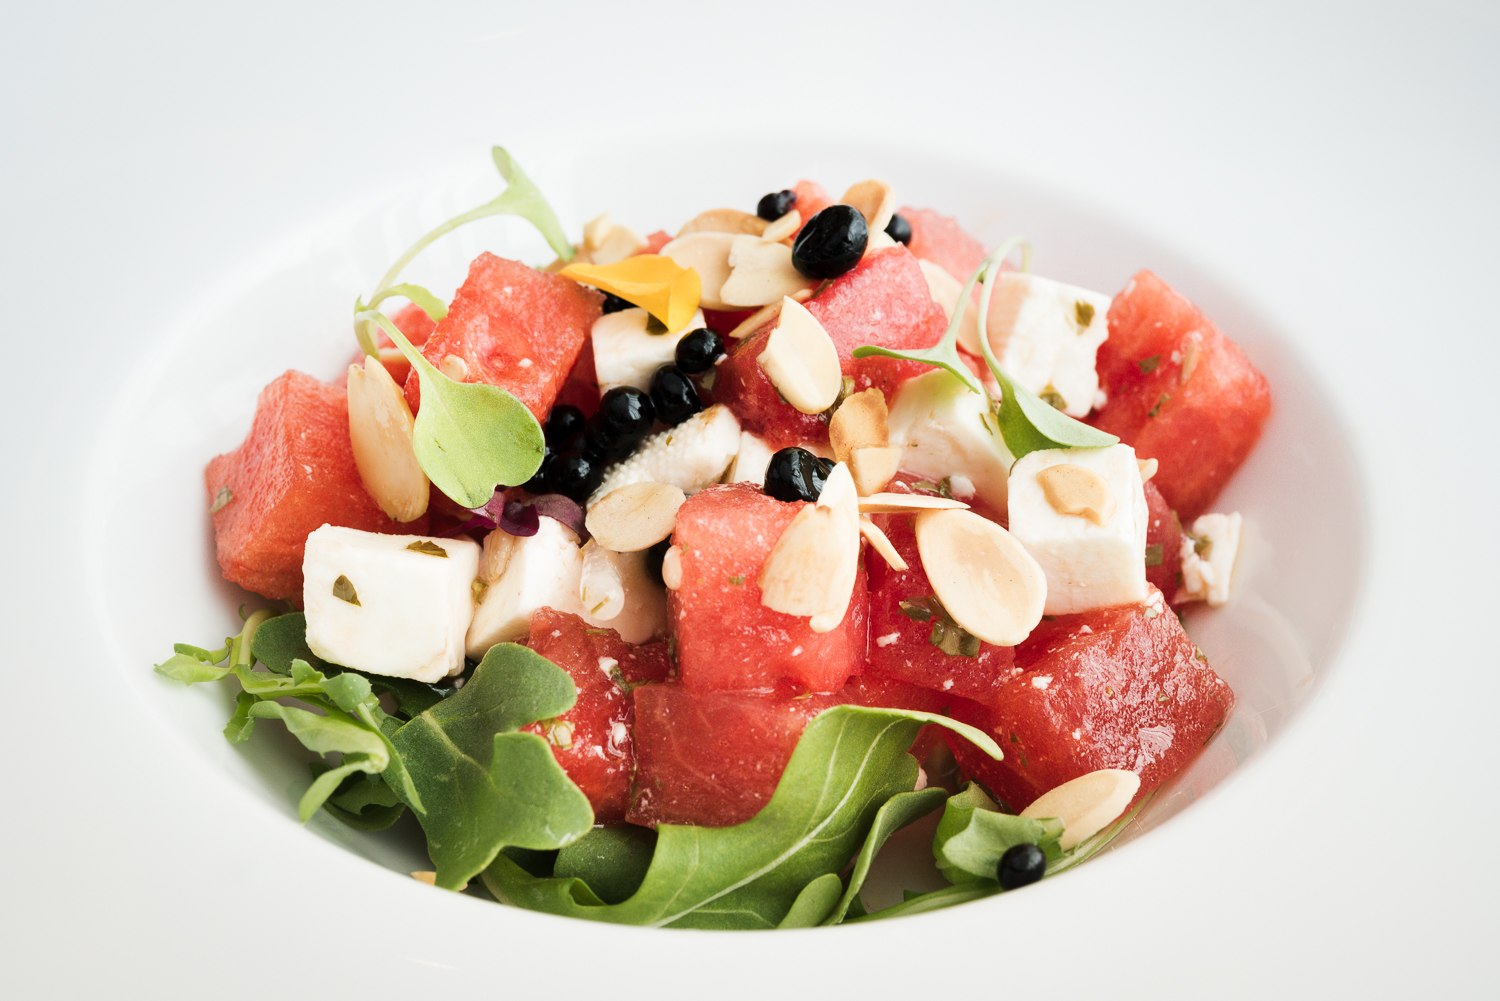 Watermelon and feta cheese salad from the table d'hôte menu | Bijou Resto | Bar - Photo credit: Audrey McMahon